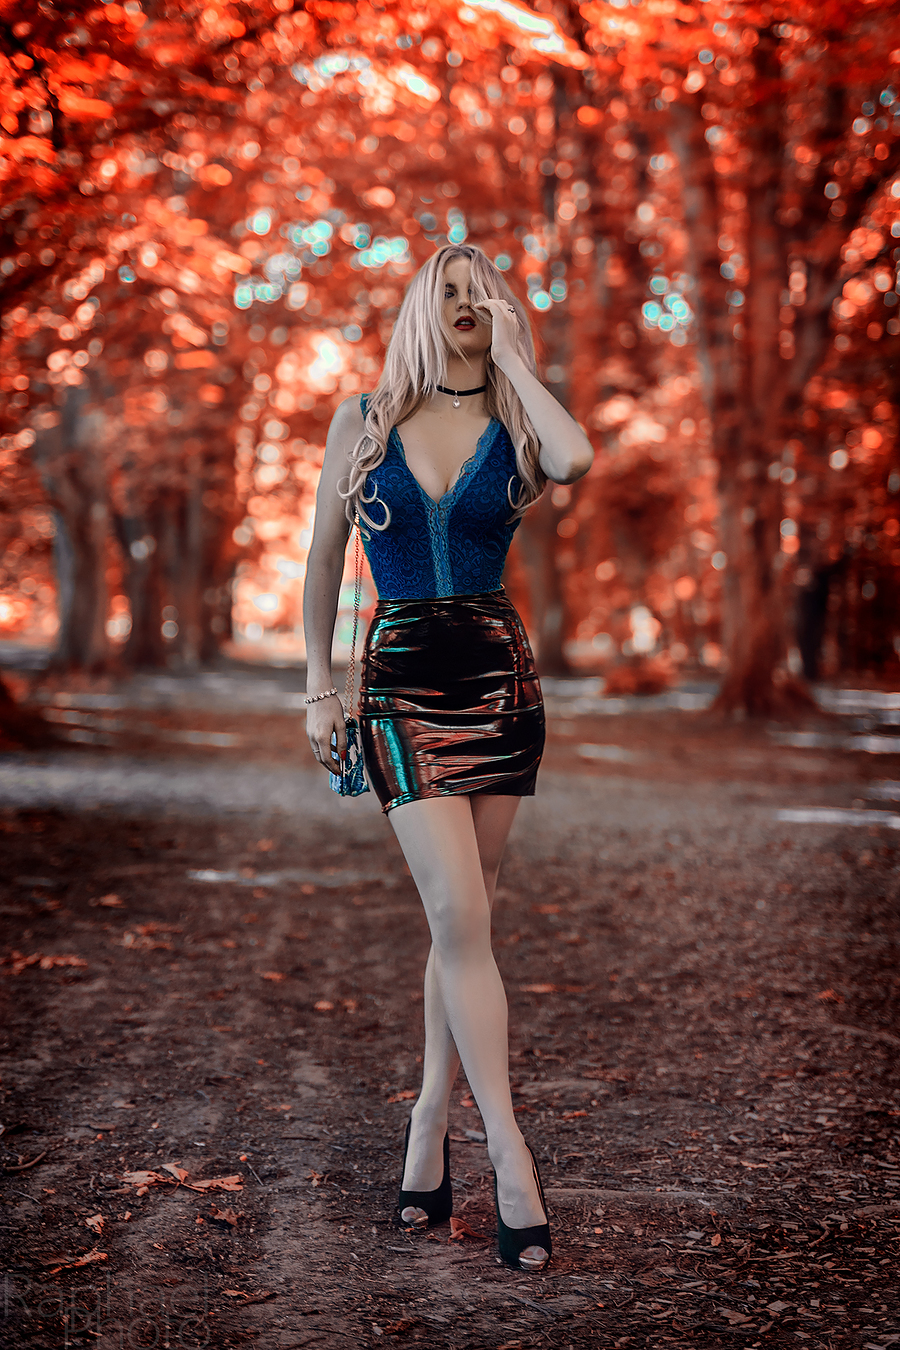 Photography by RaphaelPhoto, Model Nadia Chloe Rose / Uploaded 5th July 2018 @ 07:13 PM